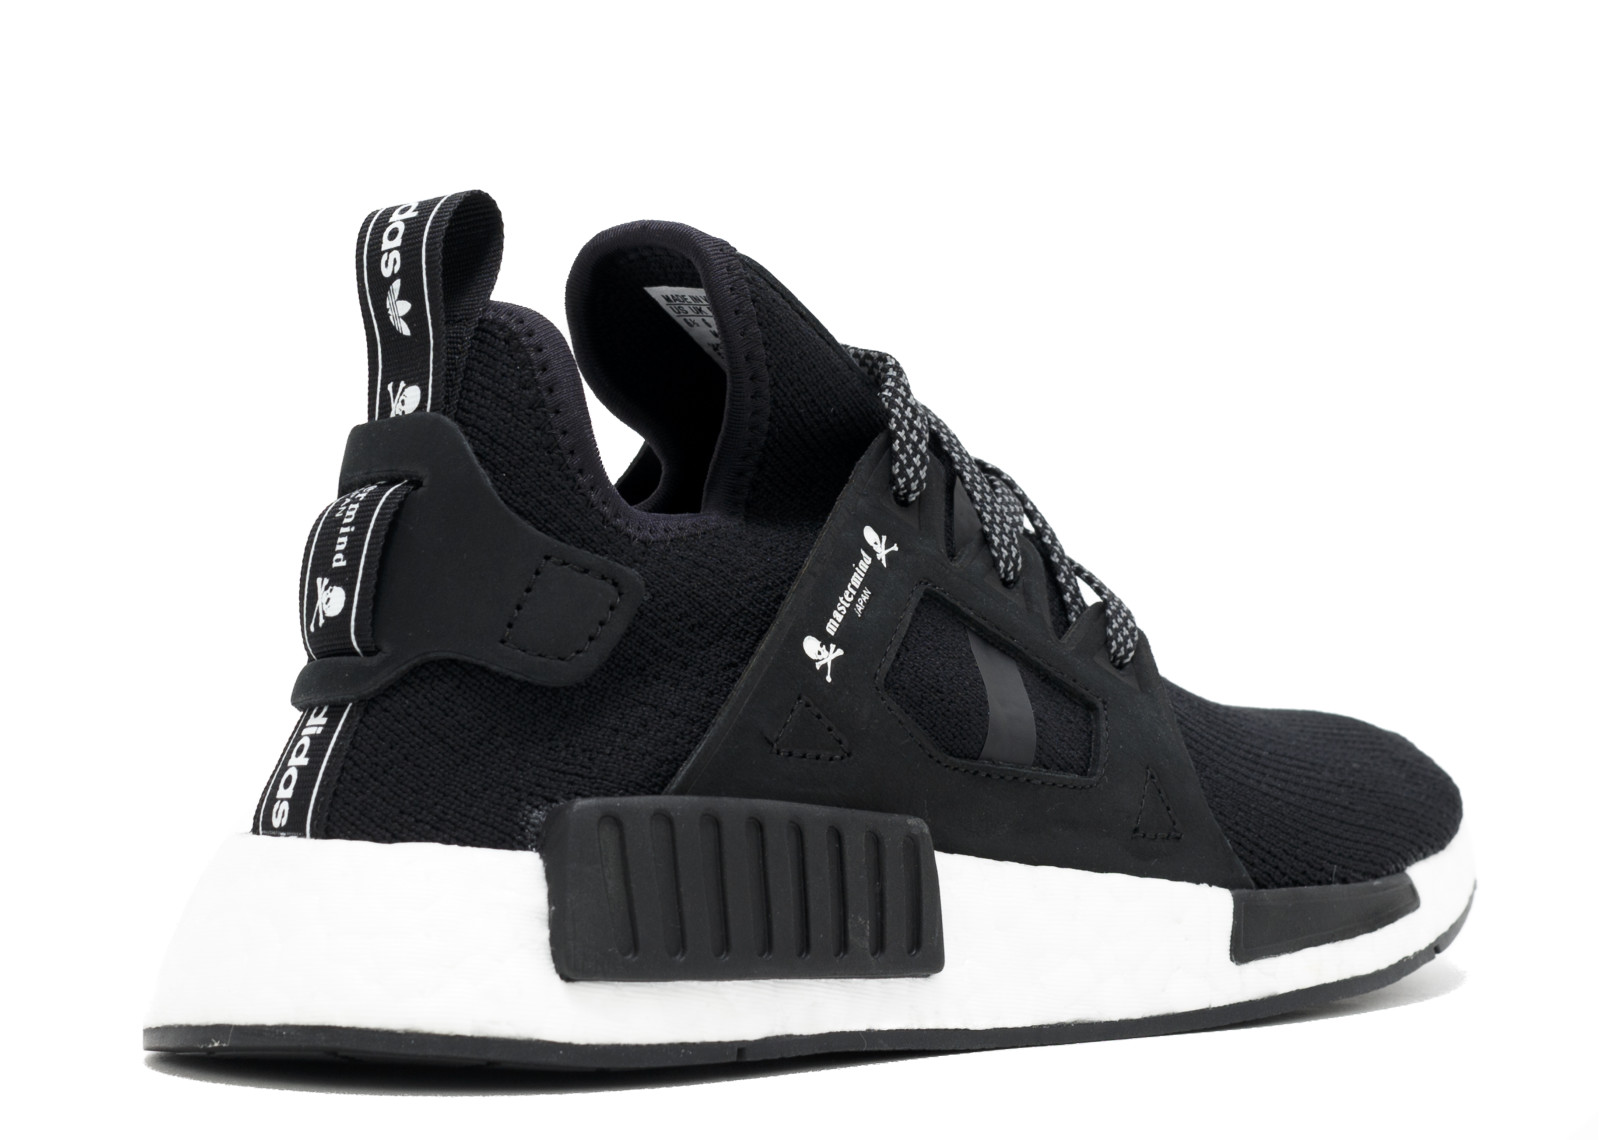 cheap for discount c5051 31f51 Details about Nmd Xr1 Mmj 'Mastermind' - Ba9726 - Size 10